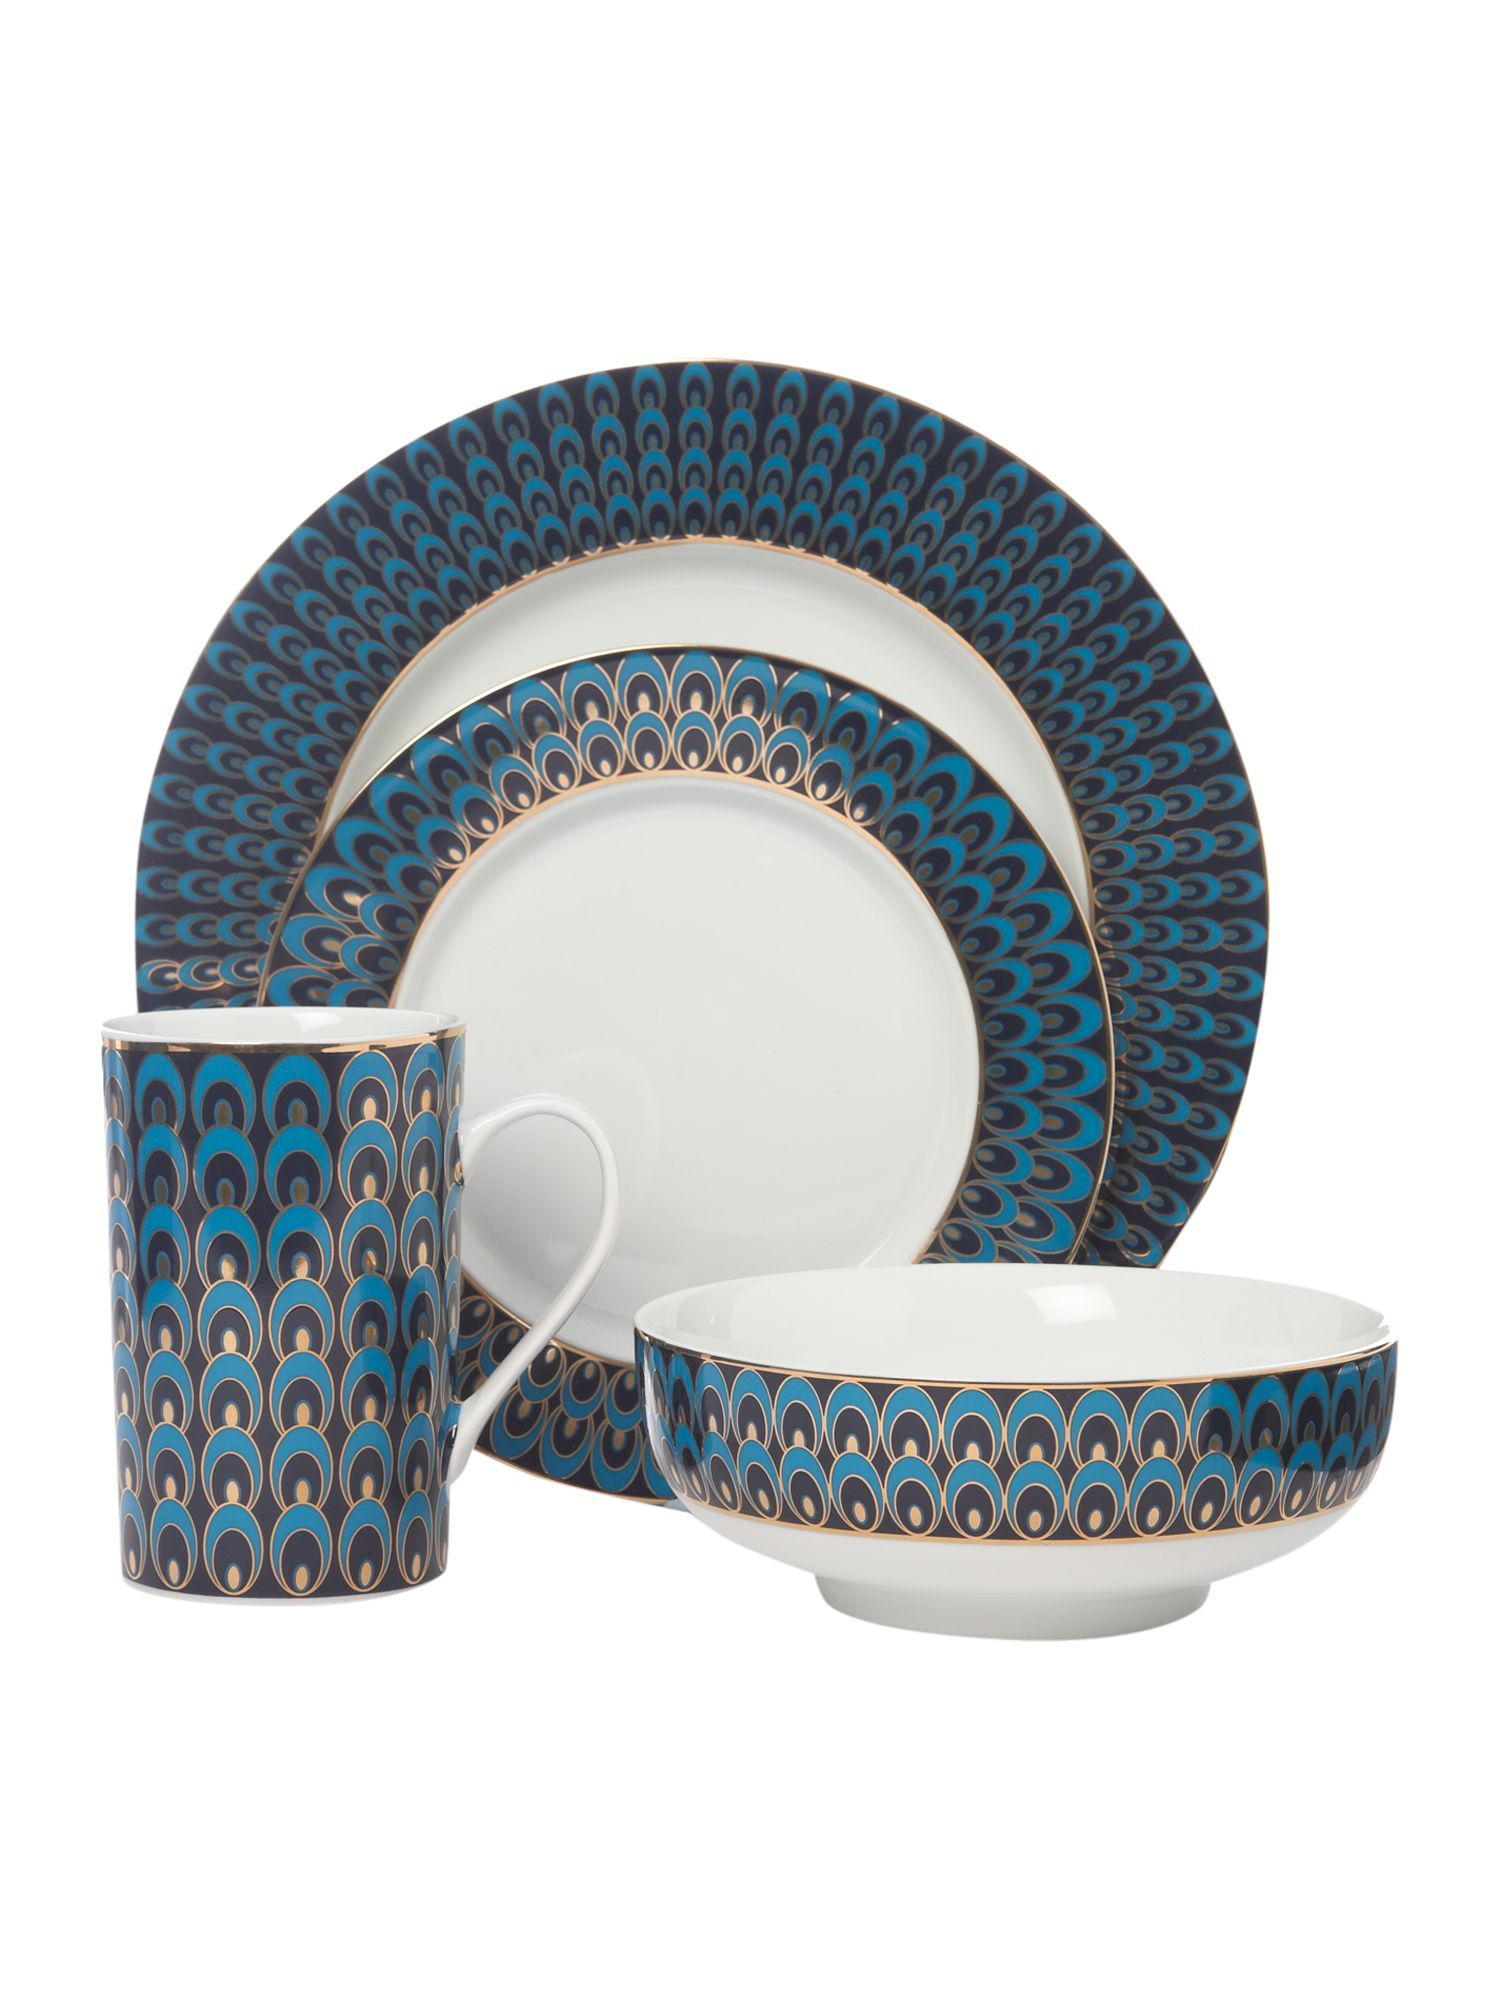 Pied a Terre Peacock 16 piece dinner set Was £122.00 Now £97.60 Shop all Dining  sc 1 st  Pinterest & Pied a Terre Peacock 16 piece dinner set Was £122.00 Now £97.60 Shop ...